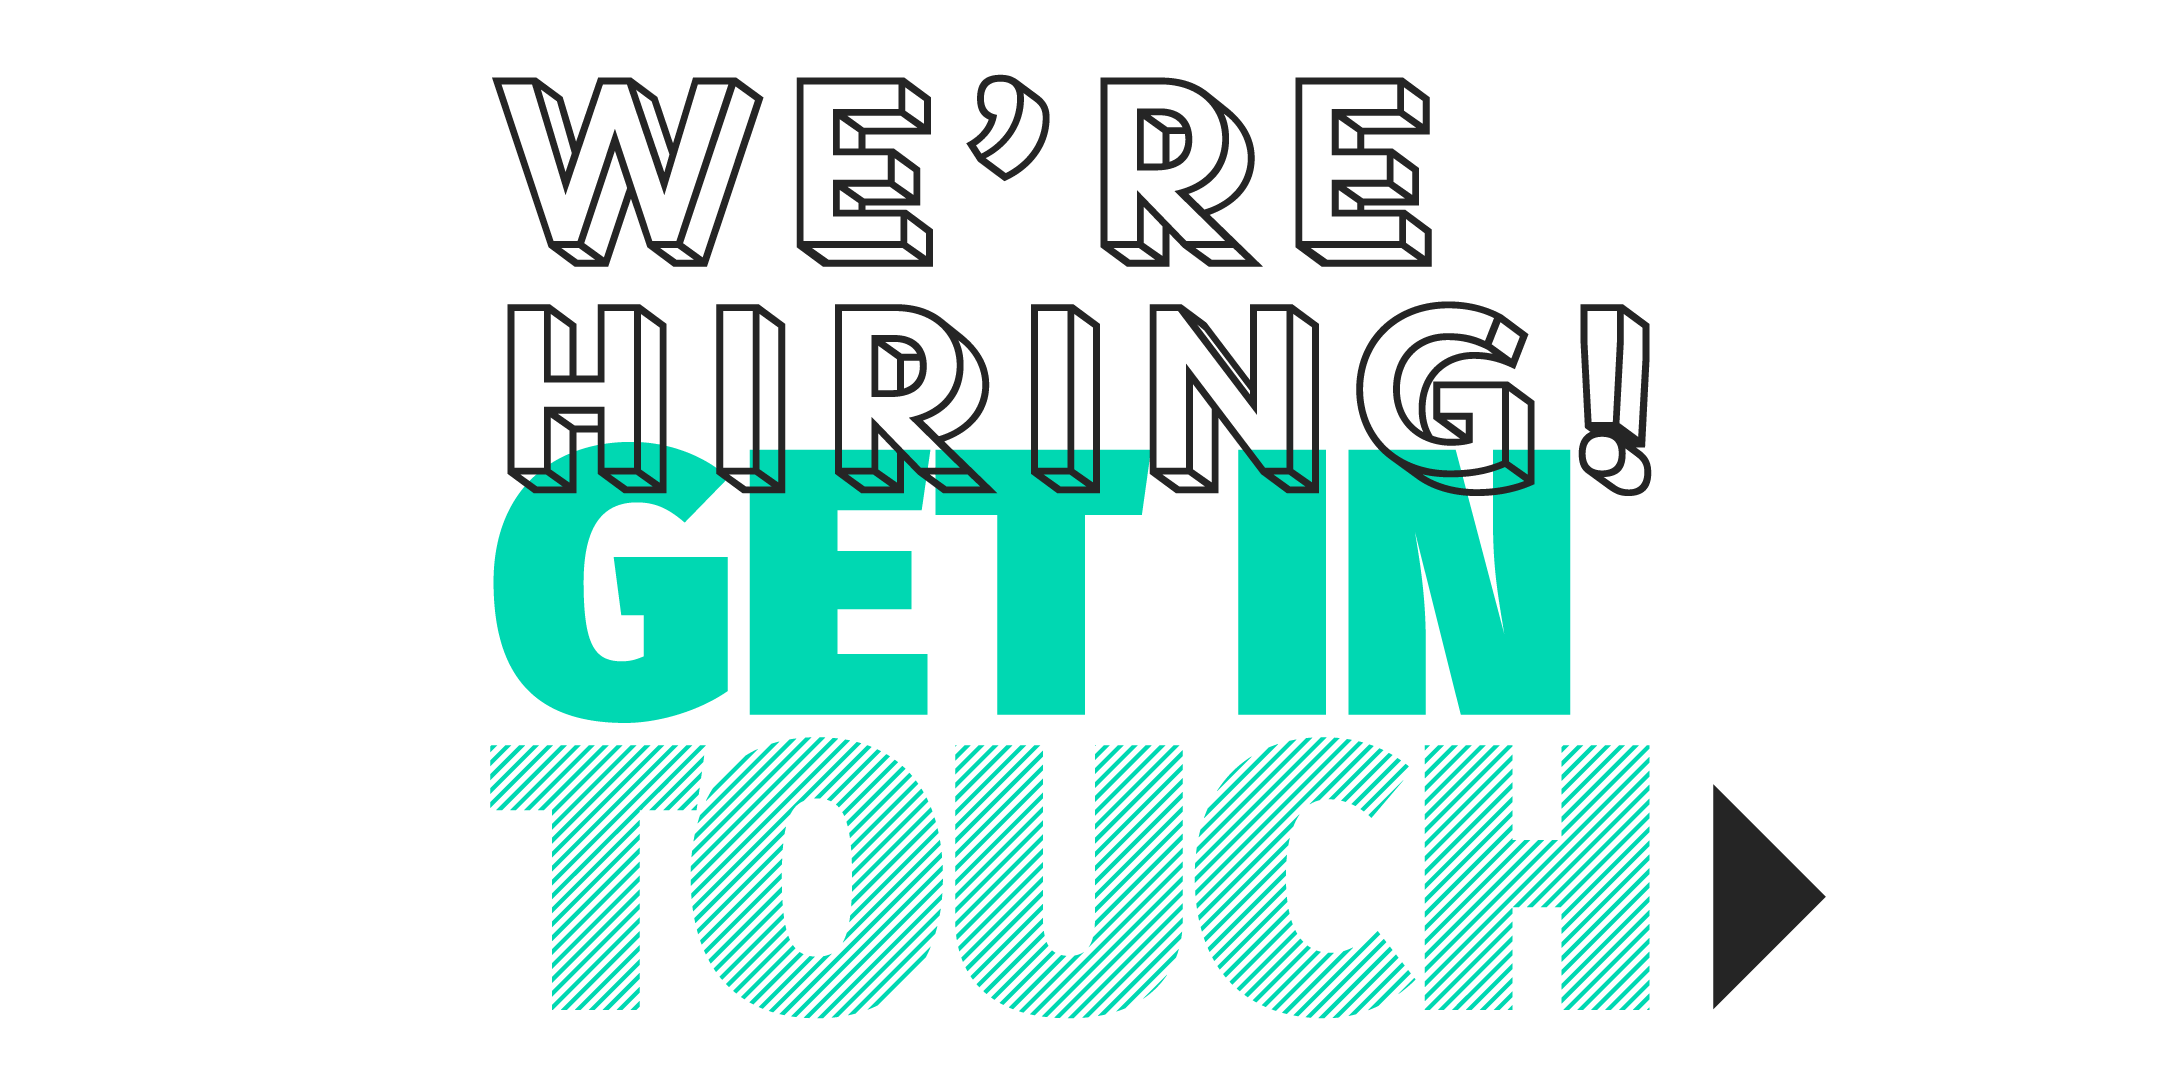 We're hiring. Vacancy for an events producer or project manager